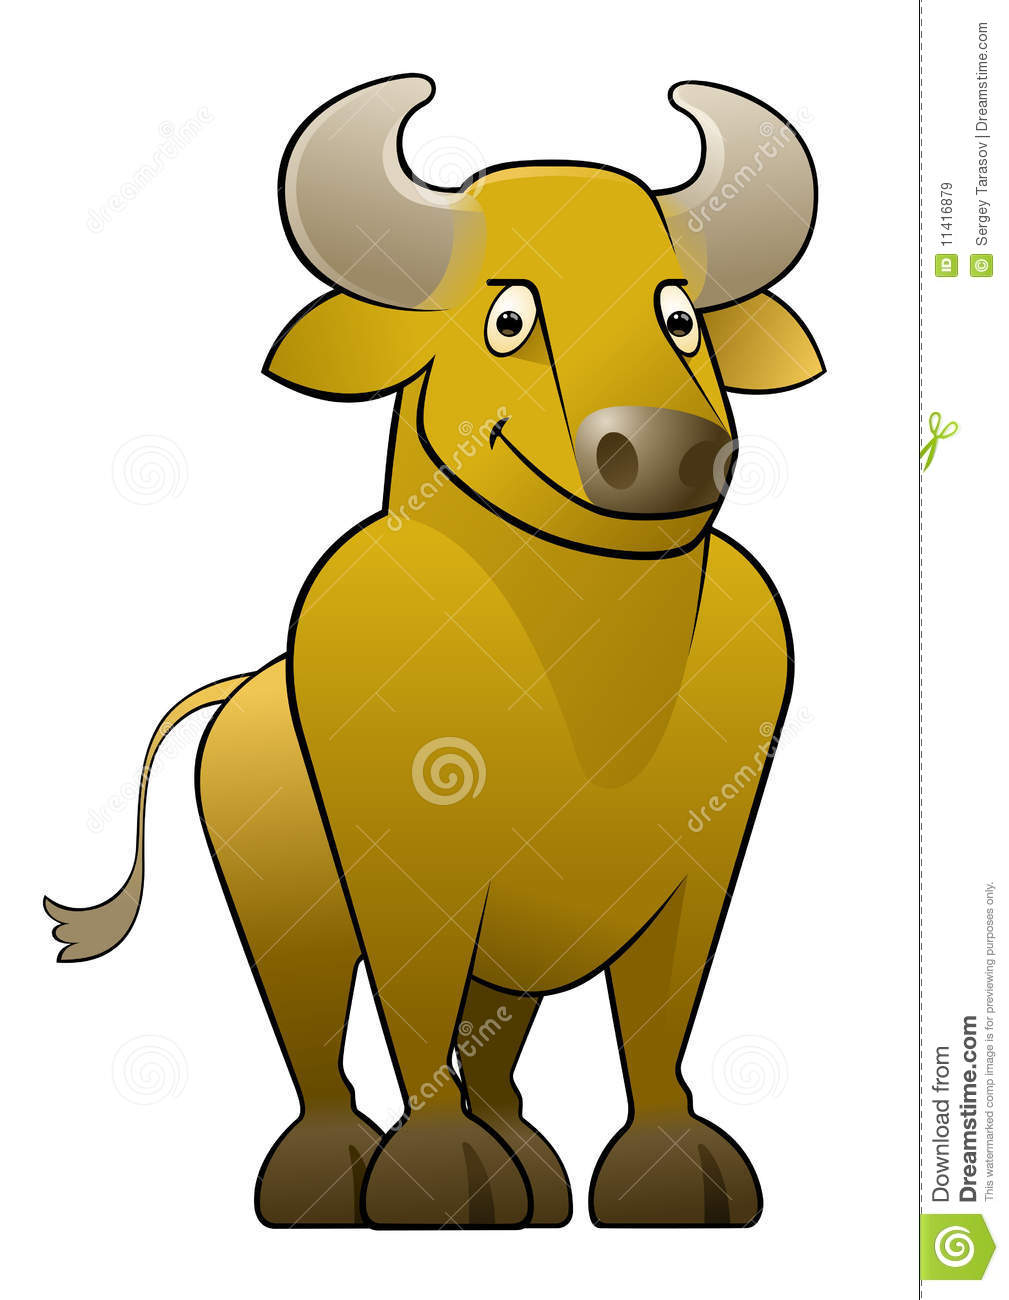 Blackleg In Cattle Is Usually Fatal An Ounce Of Prevention Vaccinate additionally Free Farm Images furthermore 5843 Royalty Free Clip Art Sick Brain Cartoon Character With Thermometer 389024 moreover Cattle Bos Taurus Astragalus Superior View additionally D8 AD D9 85 D8 A7 D8 B1  D9 81 D9 8A  D8 A7 D9 84 D9 8A D9 85 D9 86  D9 8A D9 82 D8 AA D9 84 8  D8 A3 D8 B4 D8 AE D8 A7 D8 B5  D9 88 D9 8A D8 AC D8 B1 D8 AD 7. on animal farm black